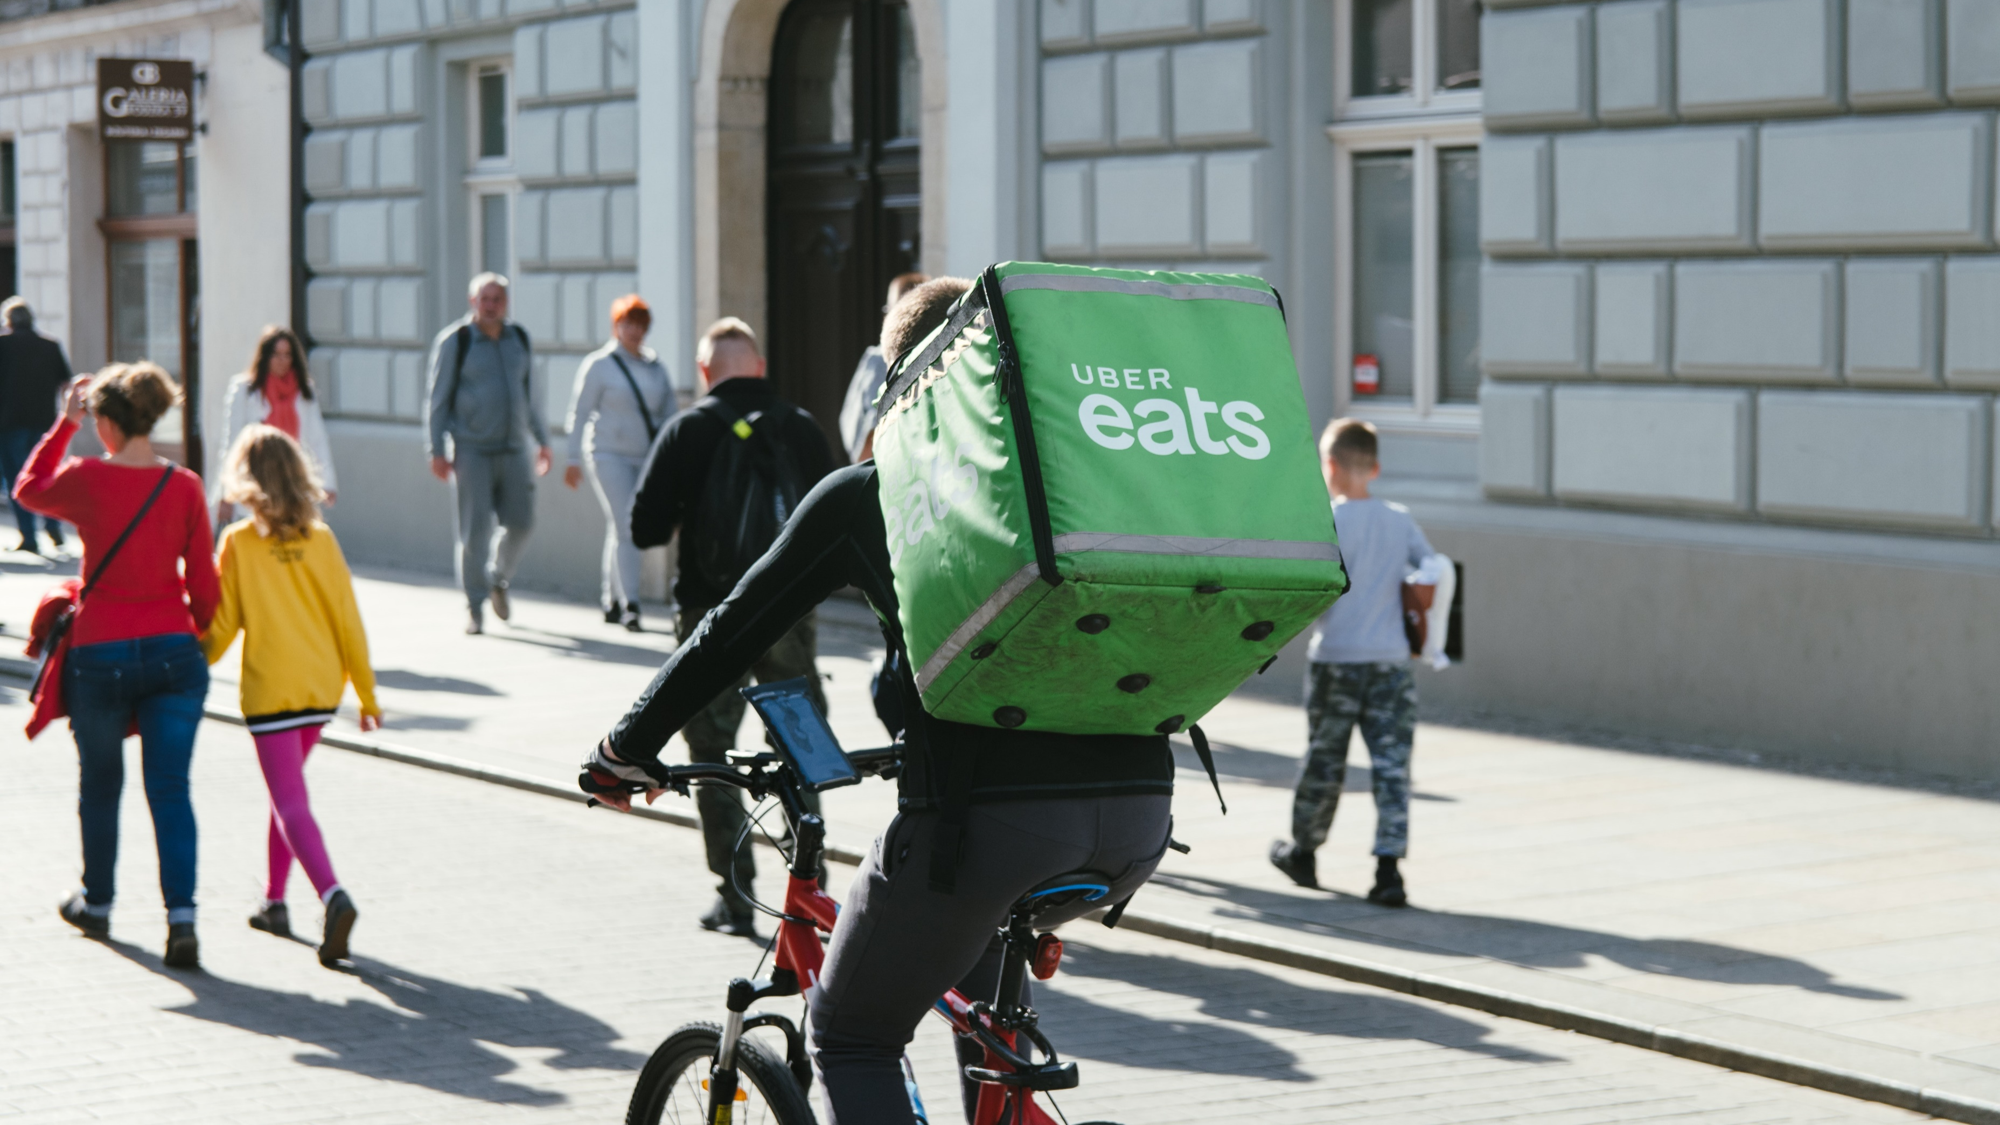 Uber Eats have taken advantage of Project Restart